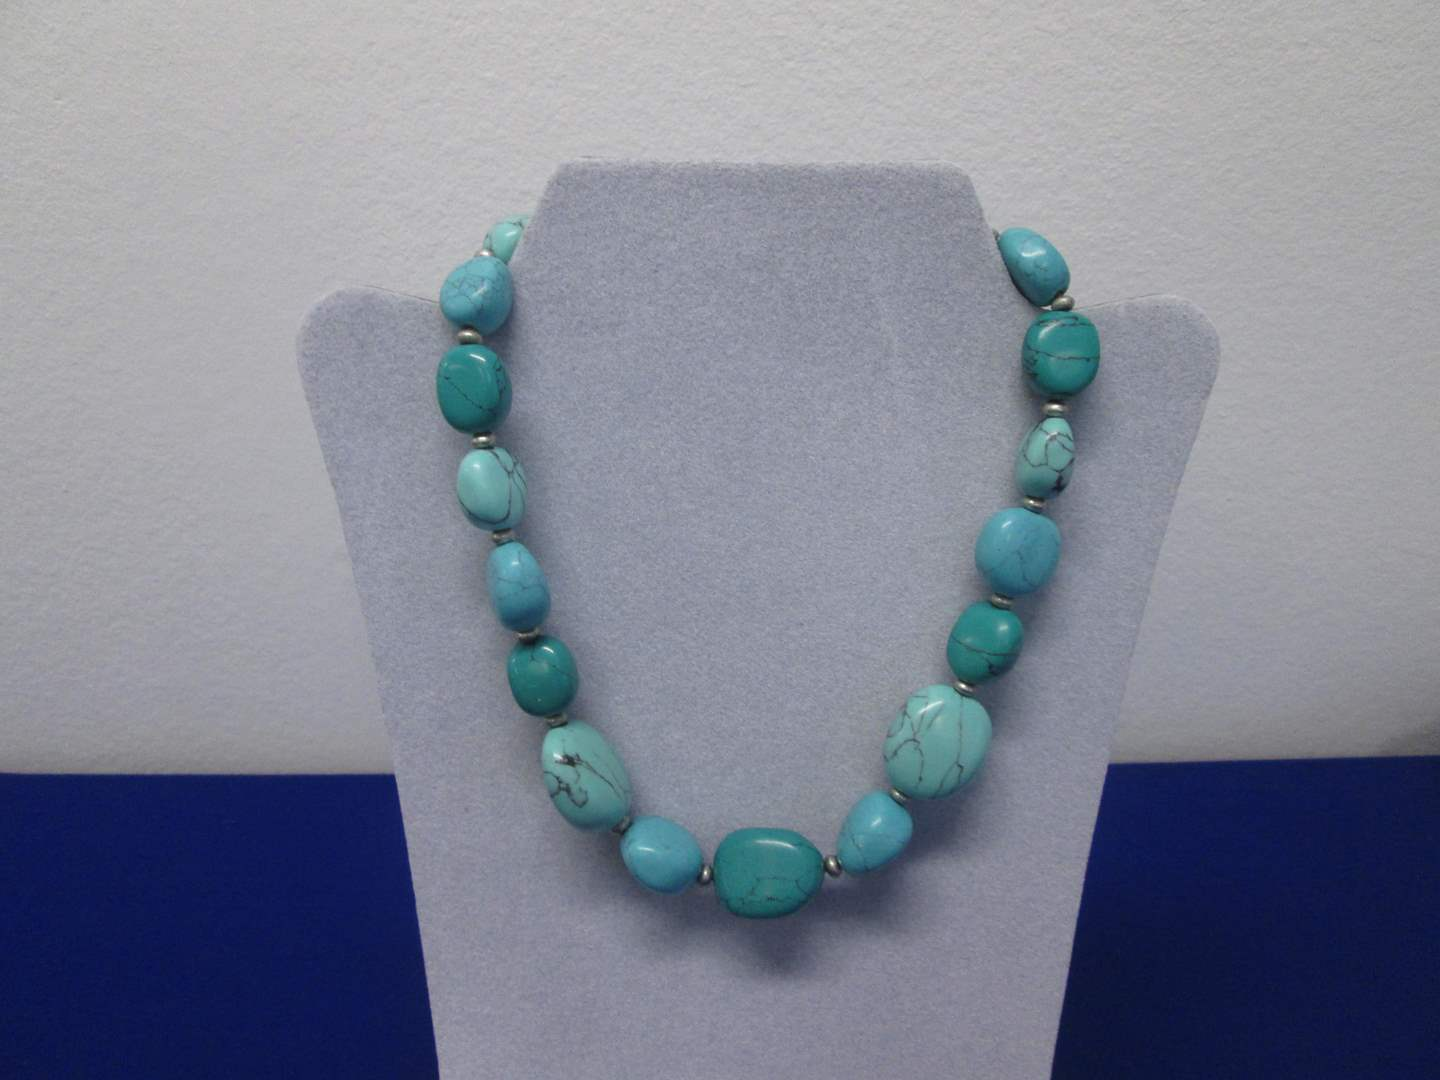 Lot # 124 - Turquoise-Colored Necklace by American Living (main image)